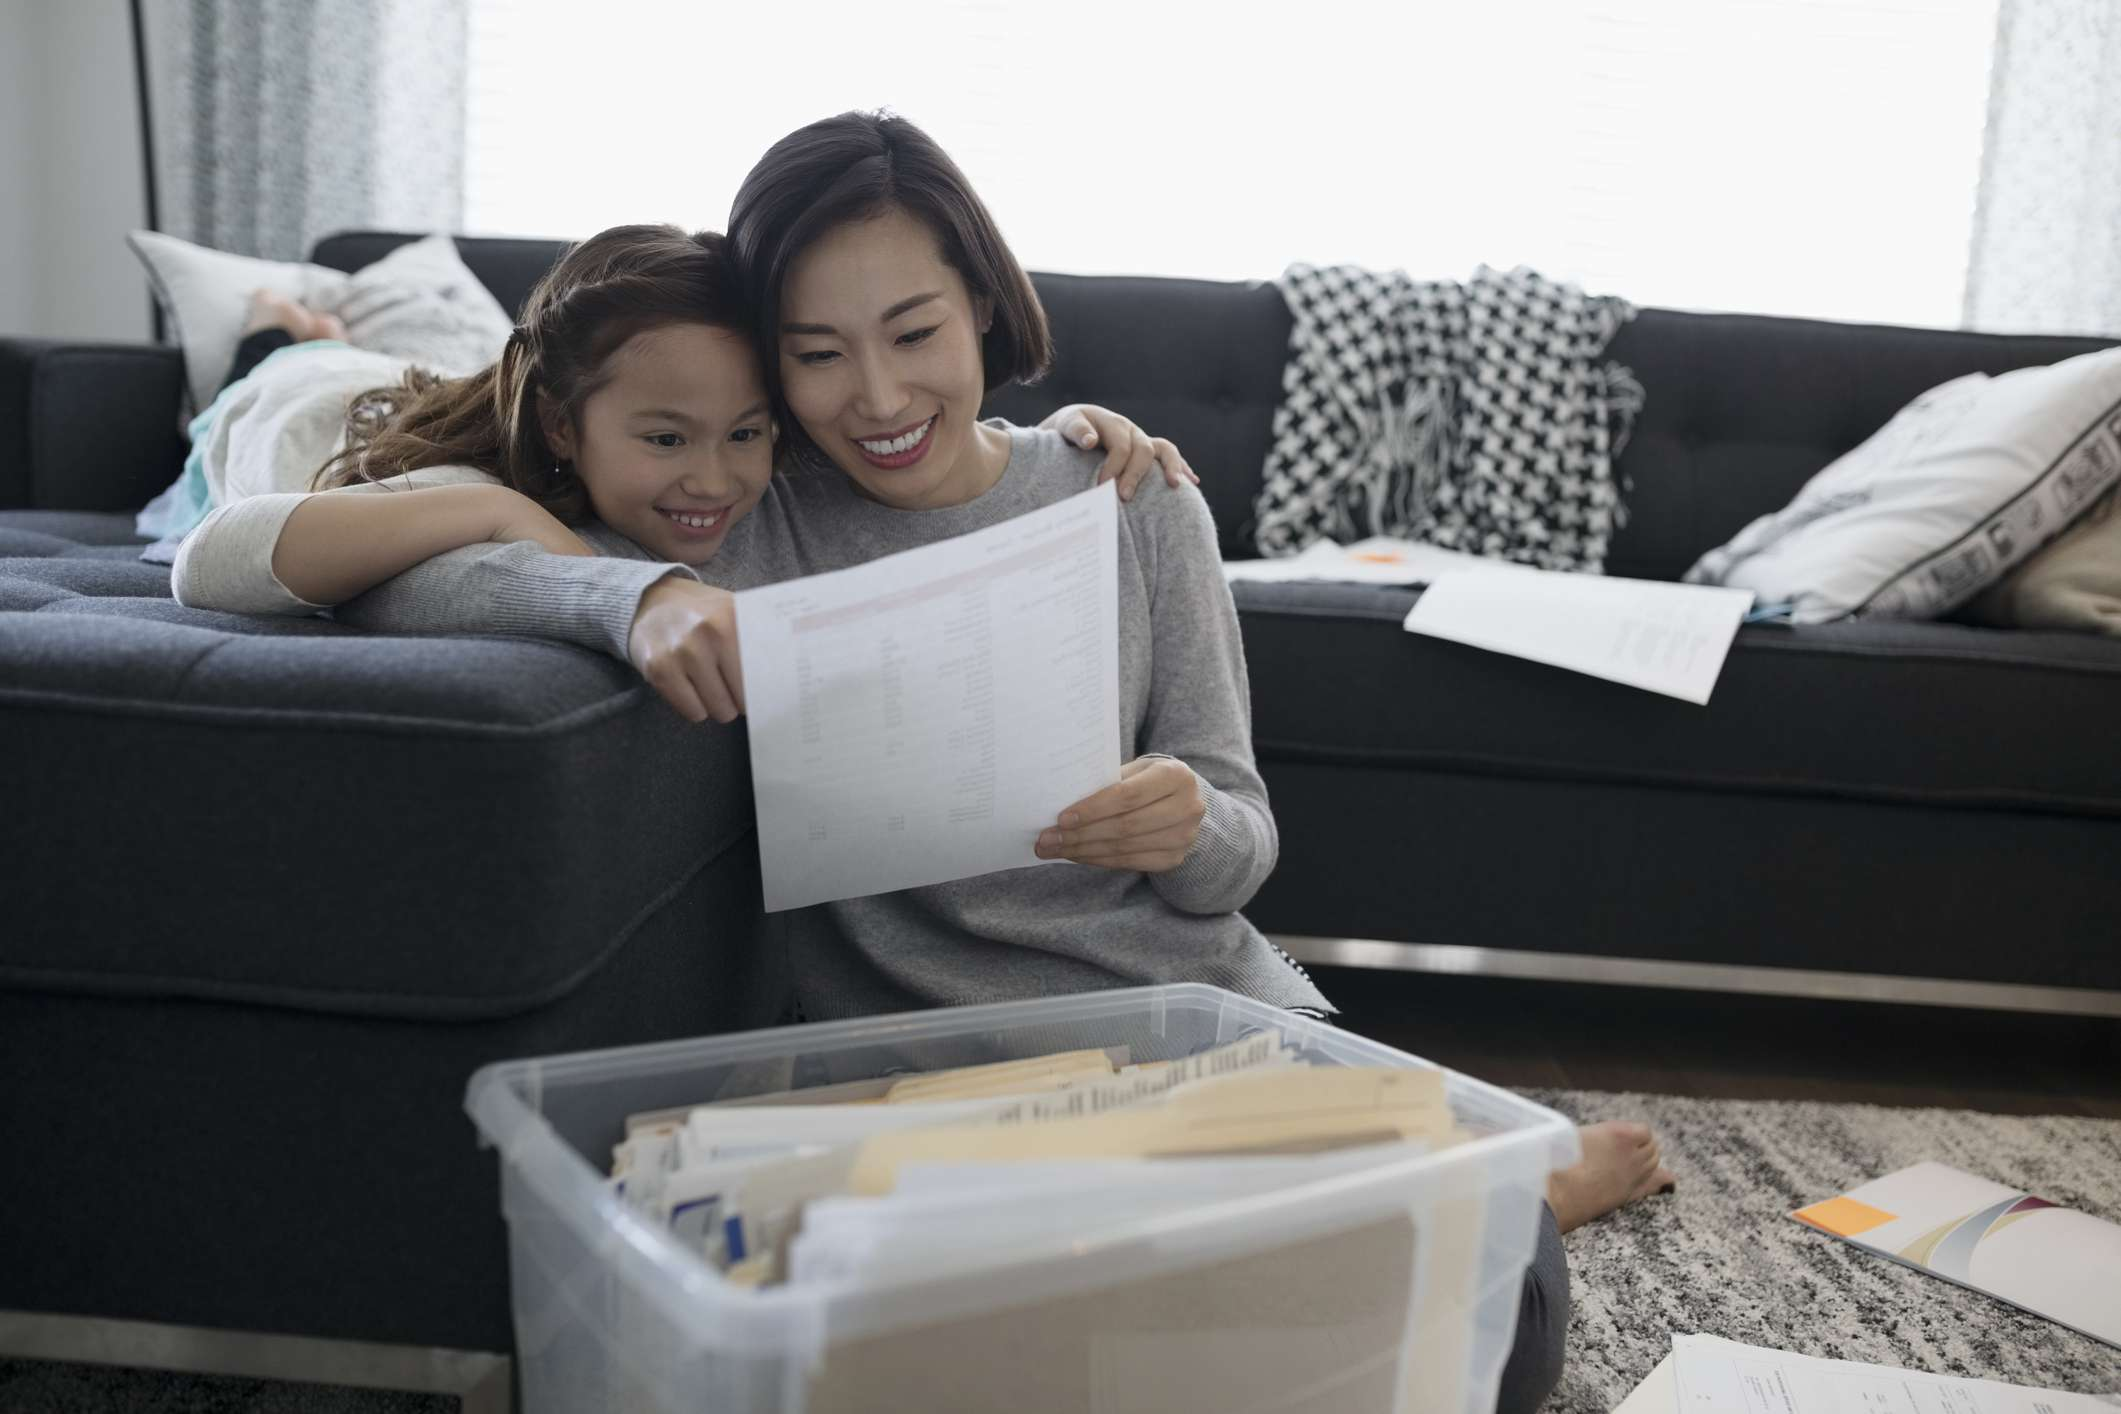 Mother and daughter viewing financial paperwork in living room